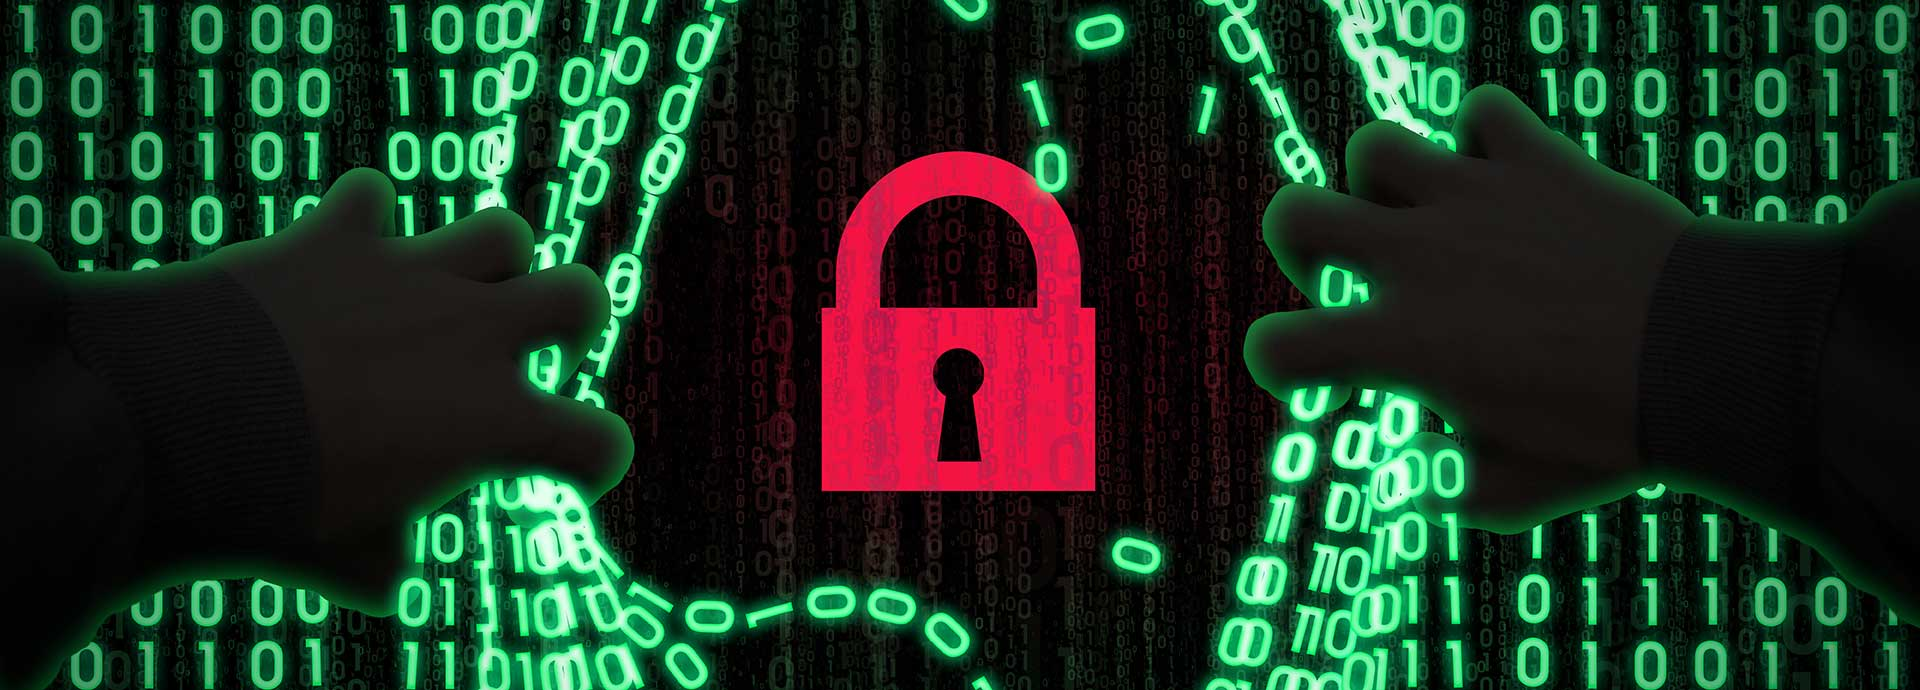 Power-up the security blanket